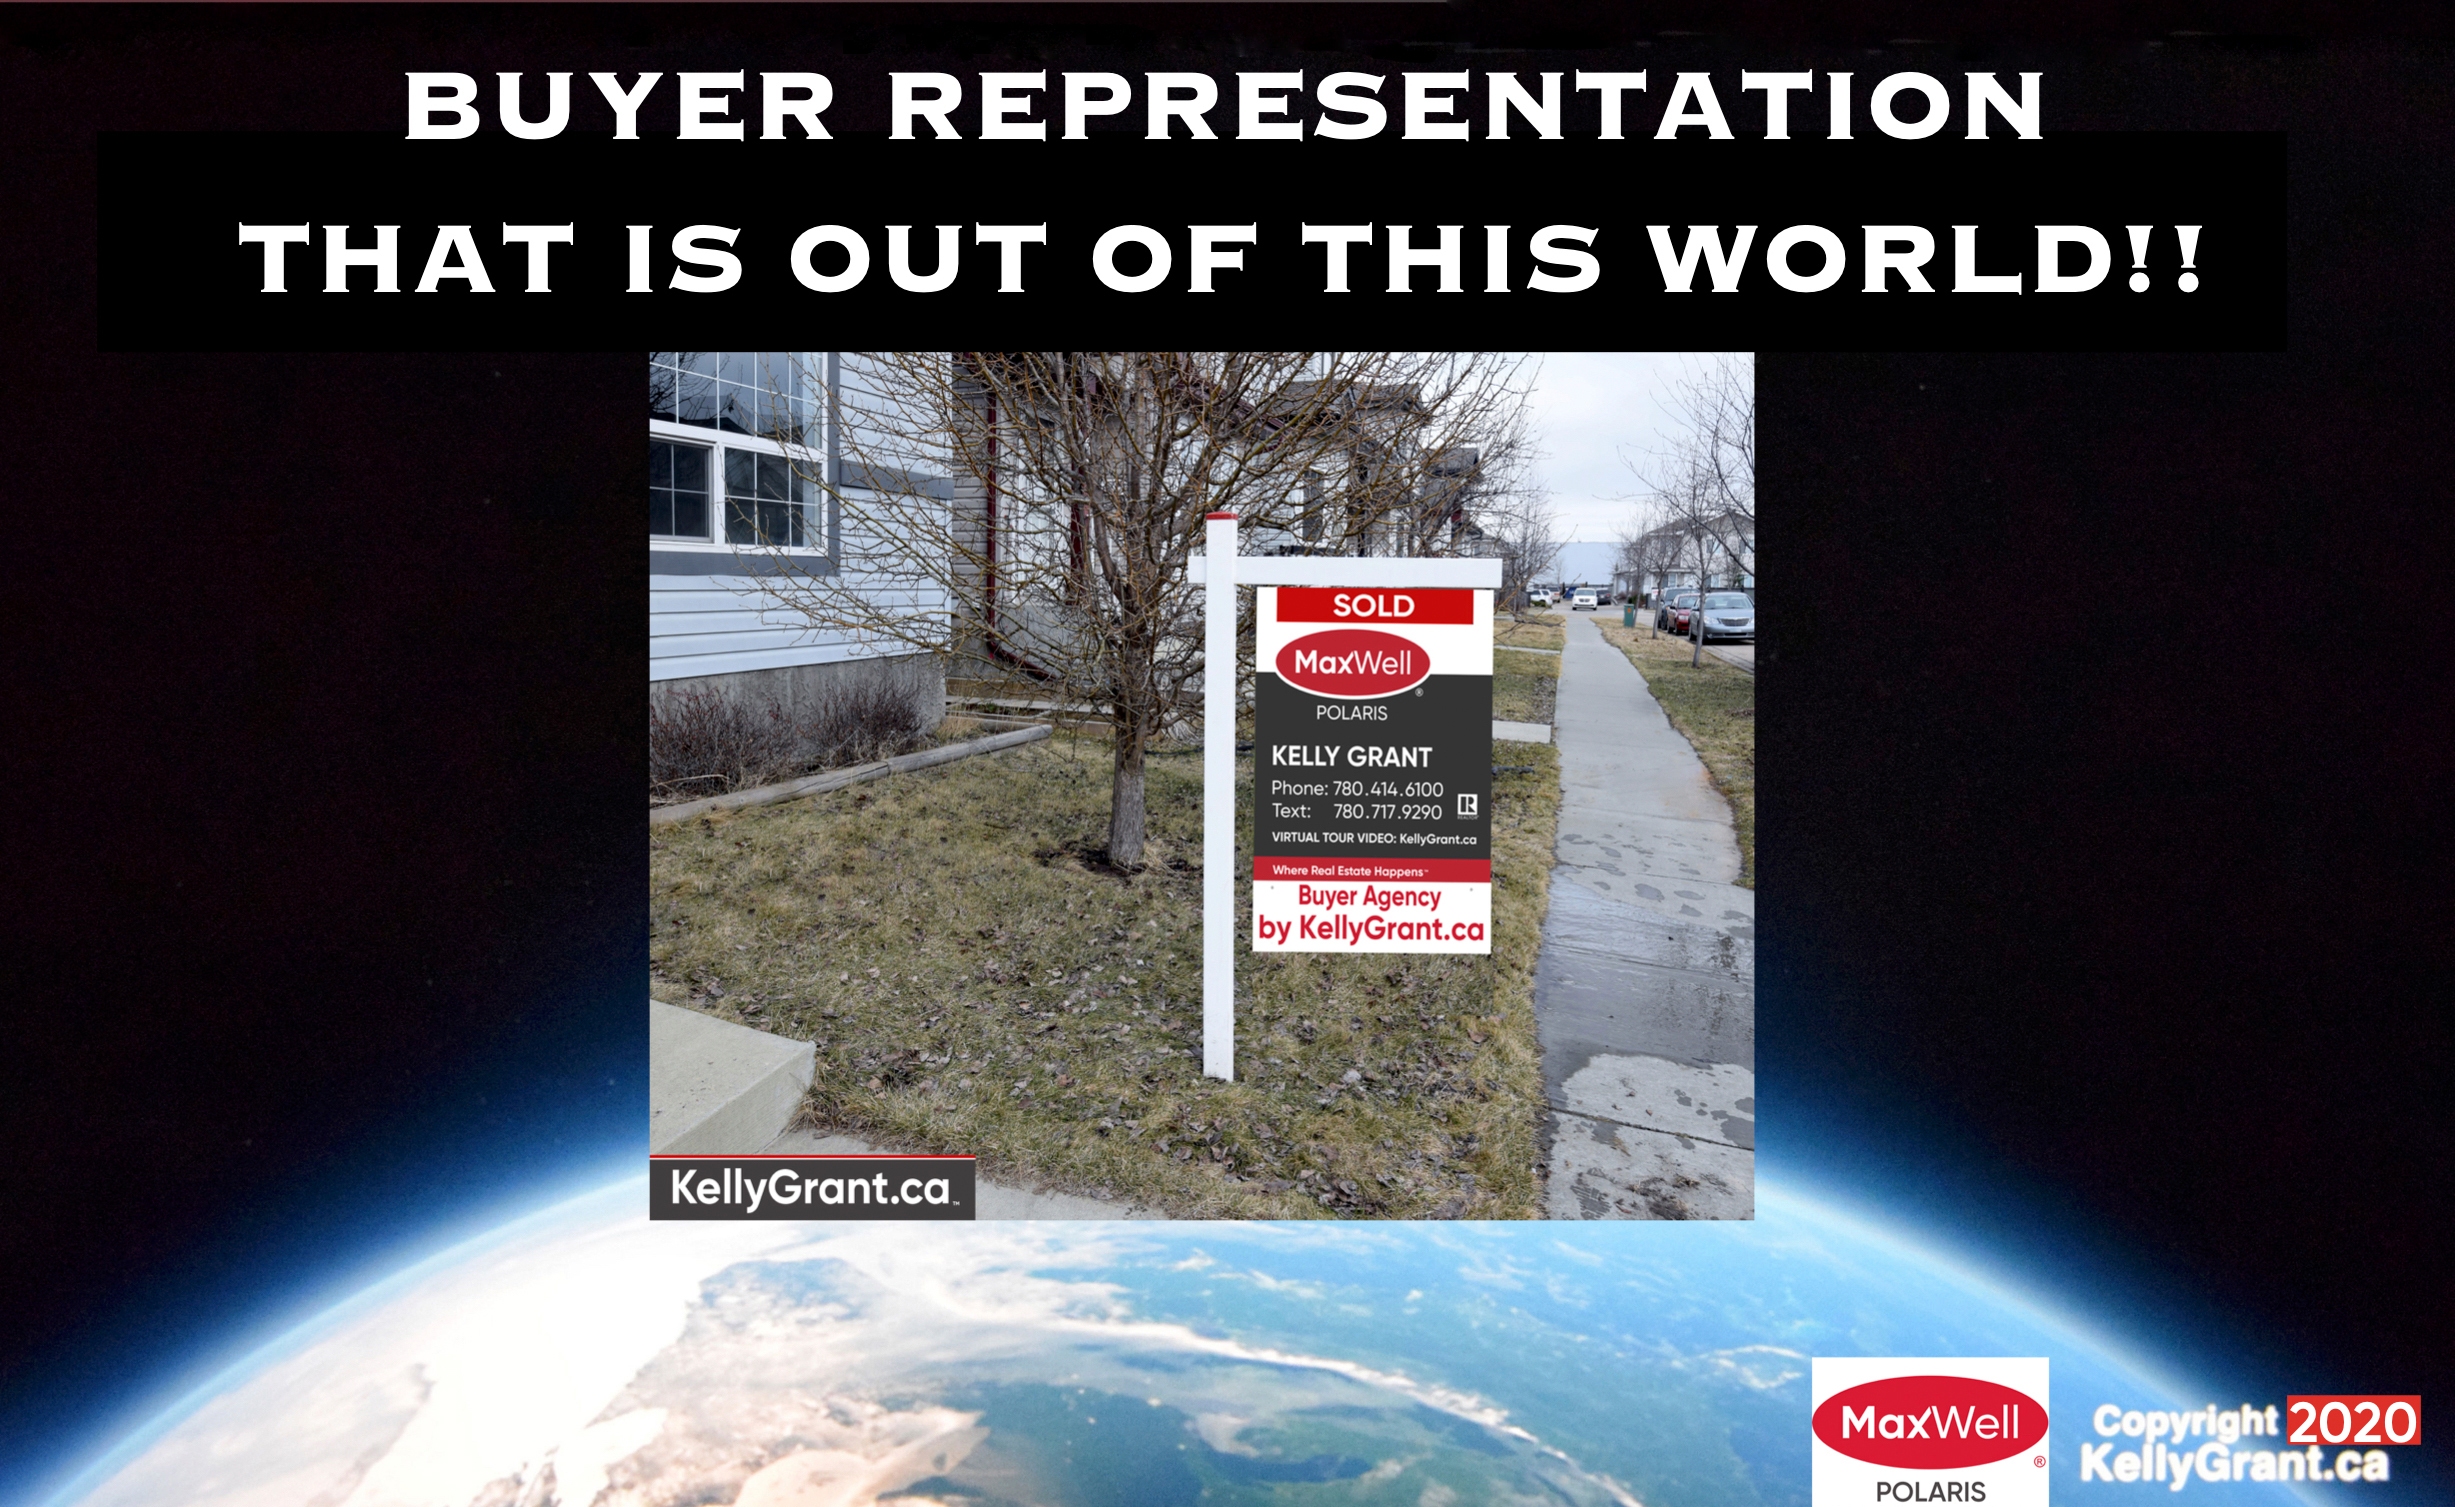 Kelly Grant MaxWell Buyer Representation That is Out of This World